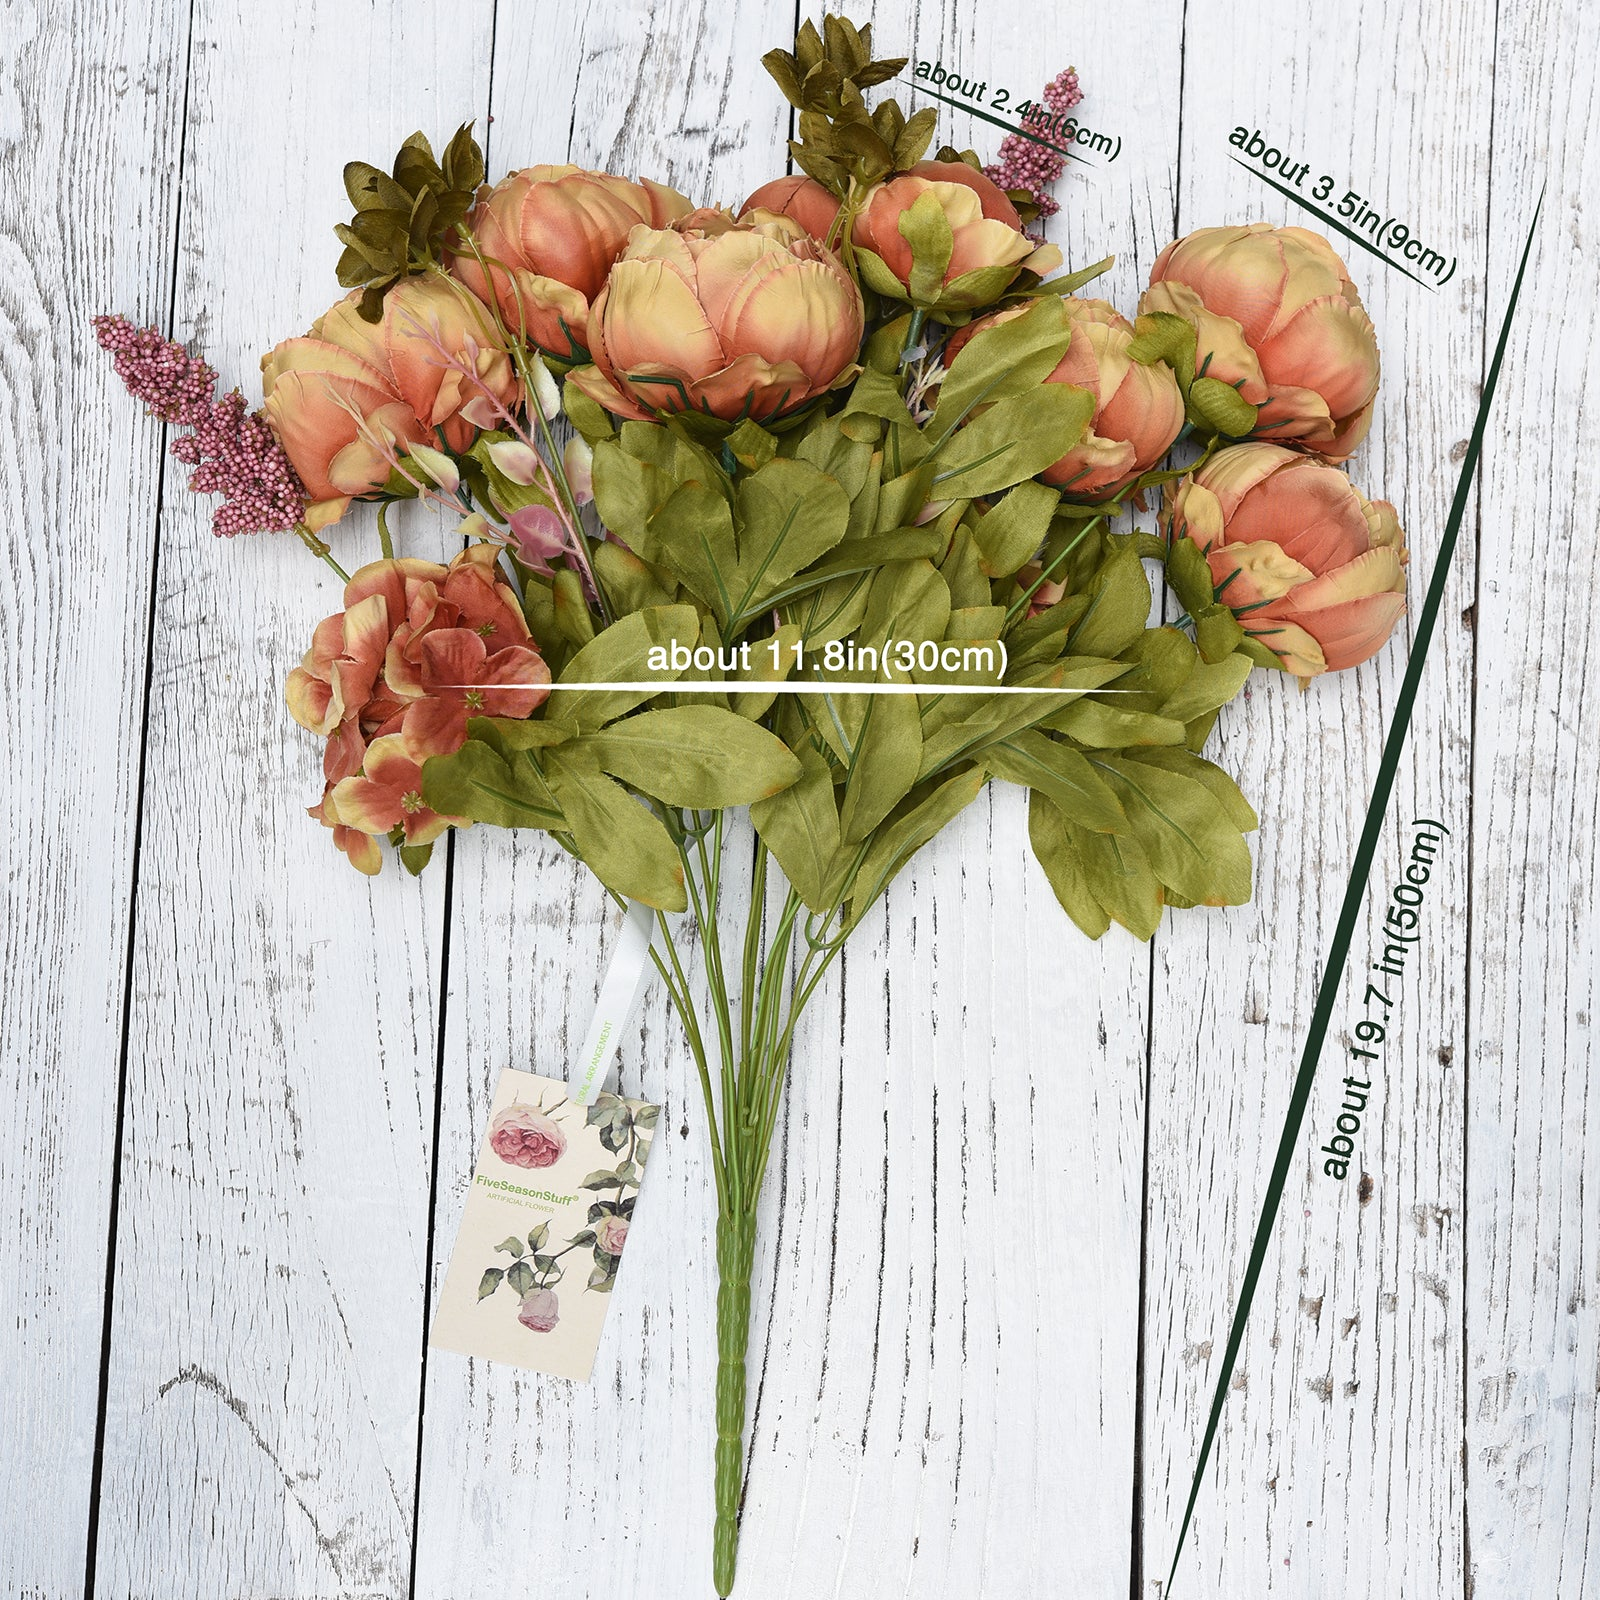 FiveSeasonStuff 2 Bundles Brown|Green Peonies Artificial Flower Bouquet